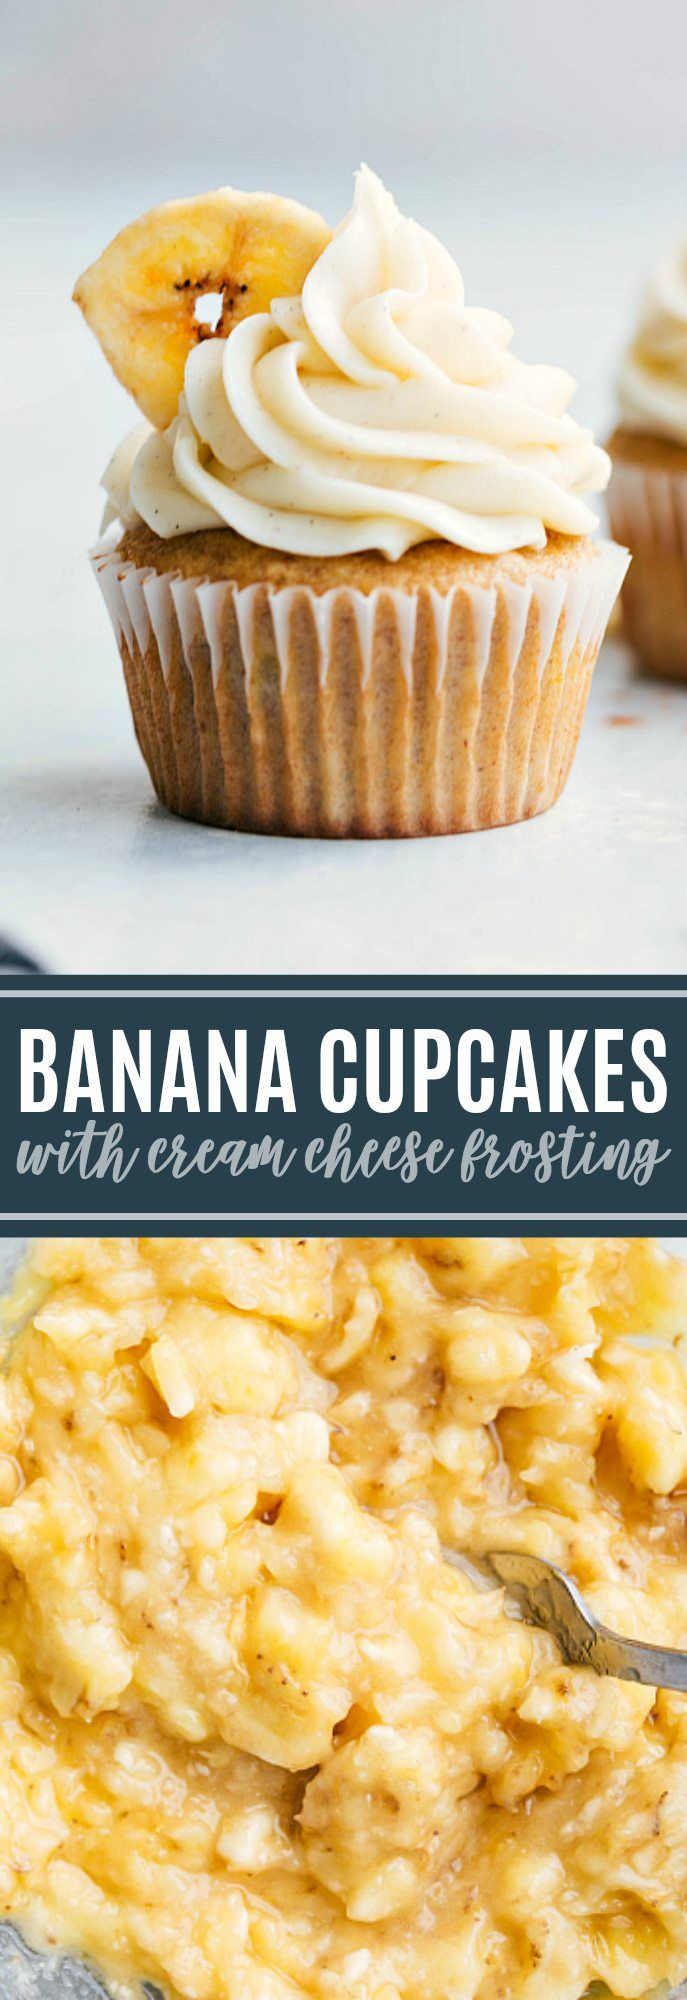 The ultimate BEST EVER banana cupcakes! Plus all the tips and tricks to make these perfect every-time!